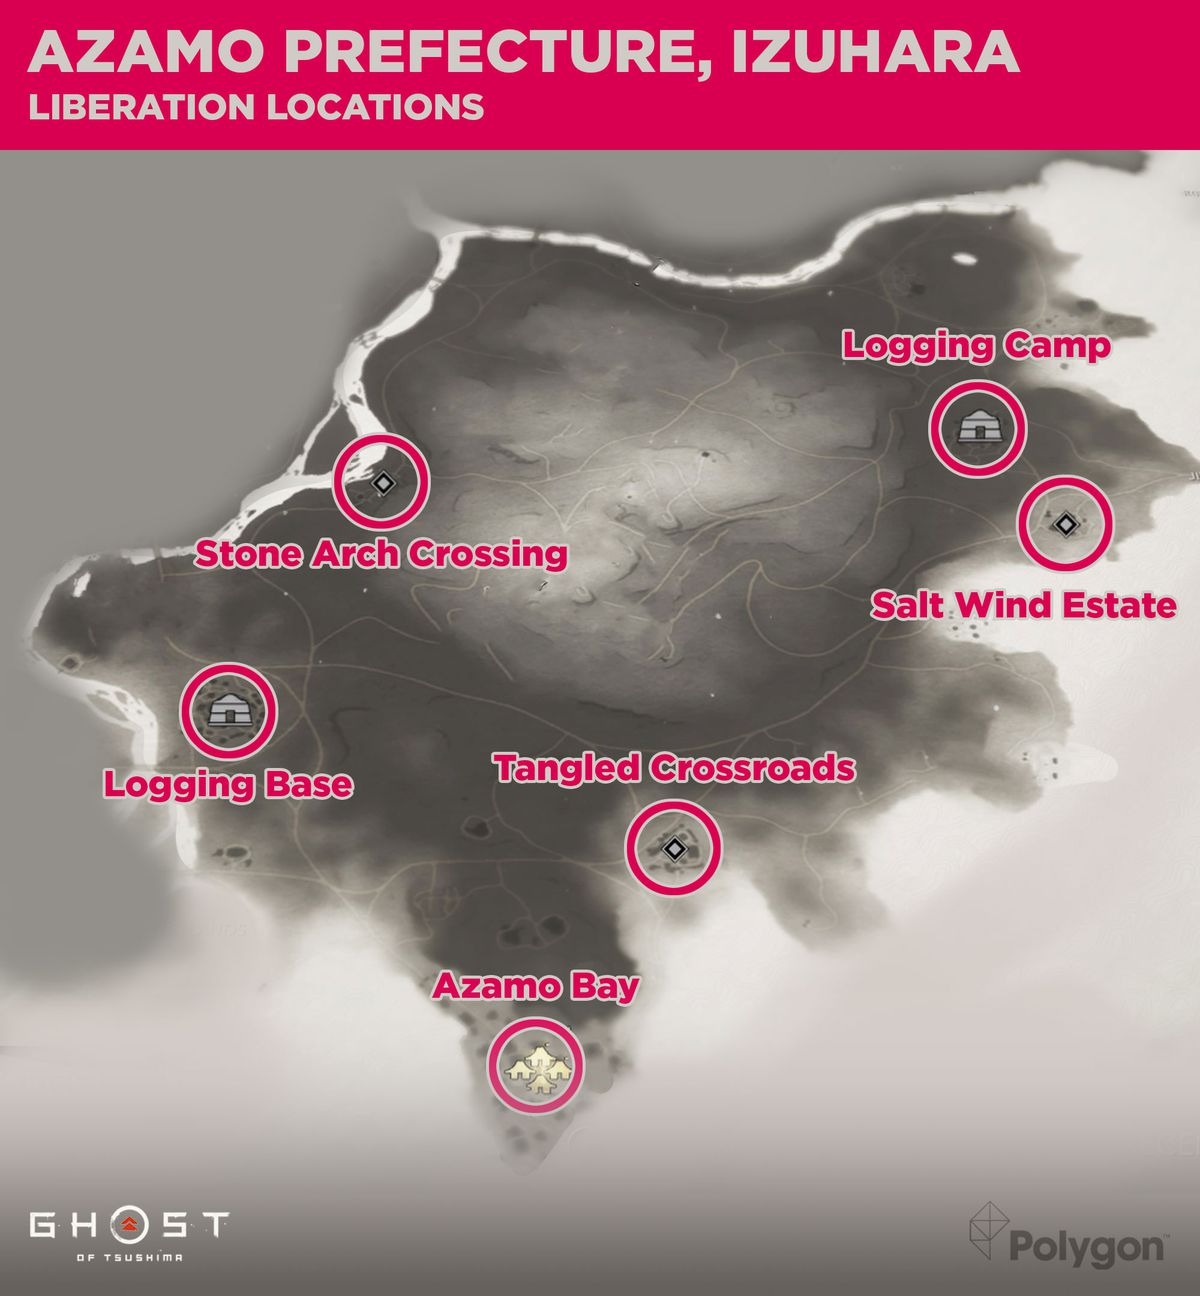 The Azamo prefecture in Ghost of Tsushima and the areas that need to be liberated including: Azamo By, the Logging Base, Stone Arch Crossing, Tangled Crossroads, Salt Wind Estate, and the Logging Camp.